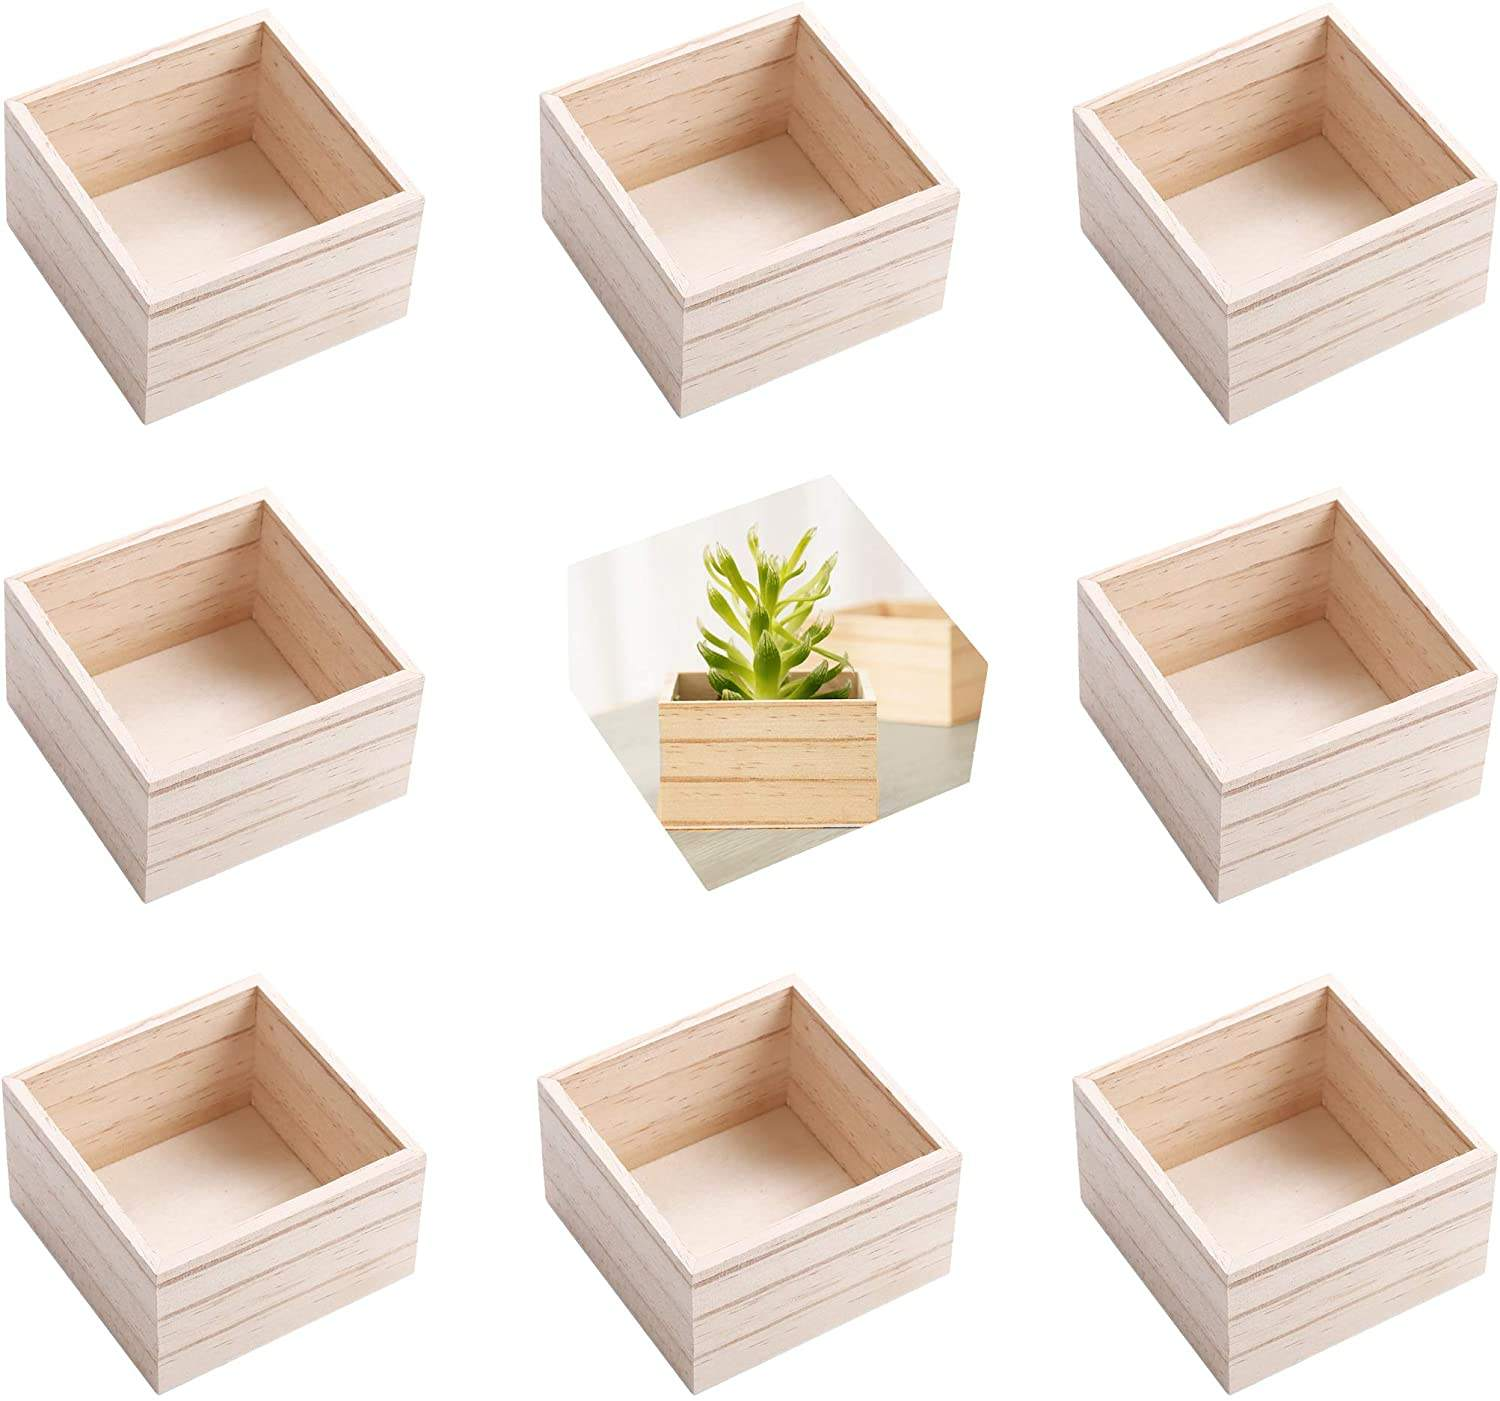 China Wooden Farm Decoration China Wooden Farm Decoration Manufacturers And Suppliers On Alibaba Com